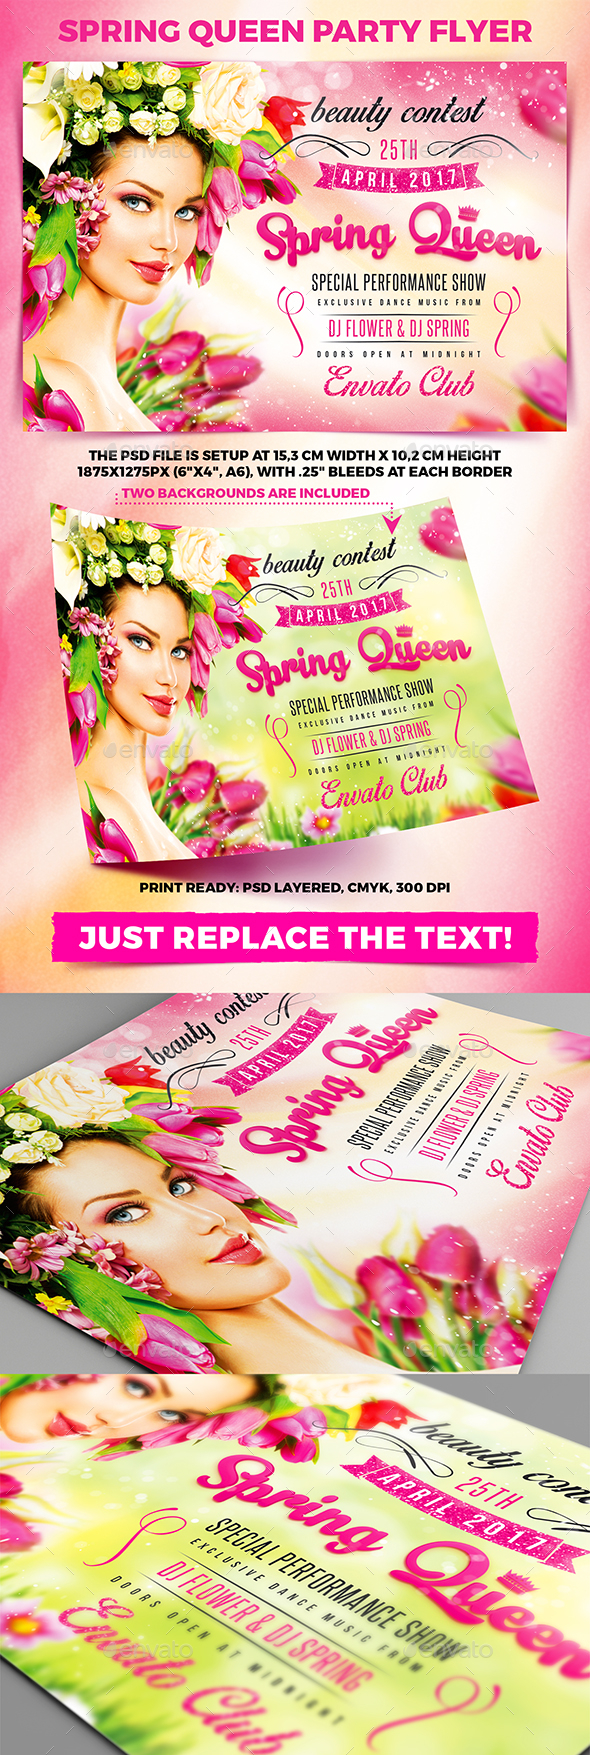 Spring Queen Party Flyer vol.2